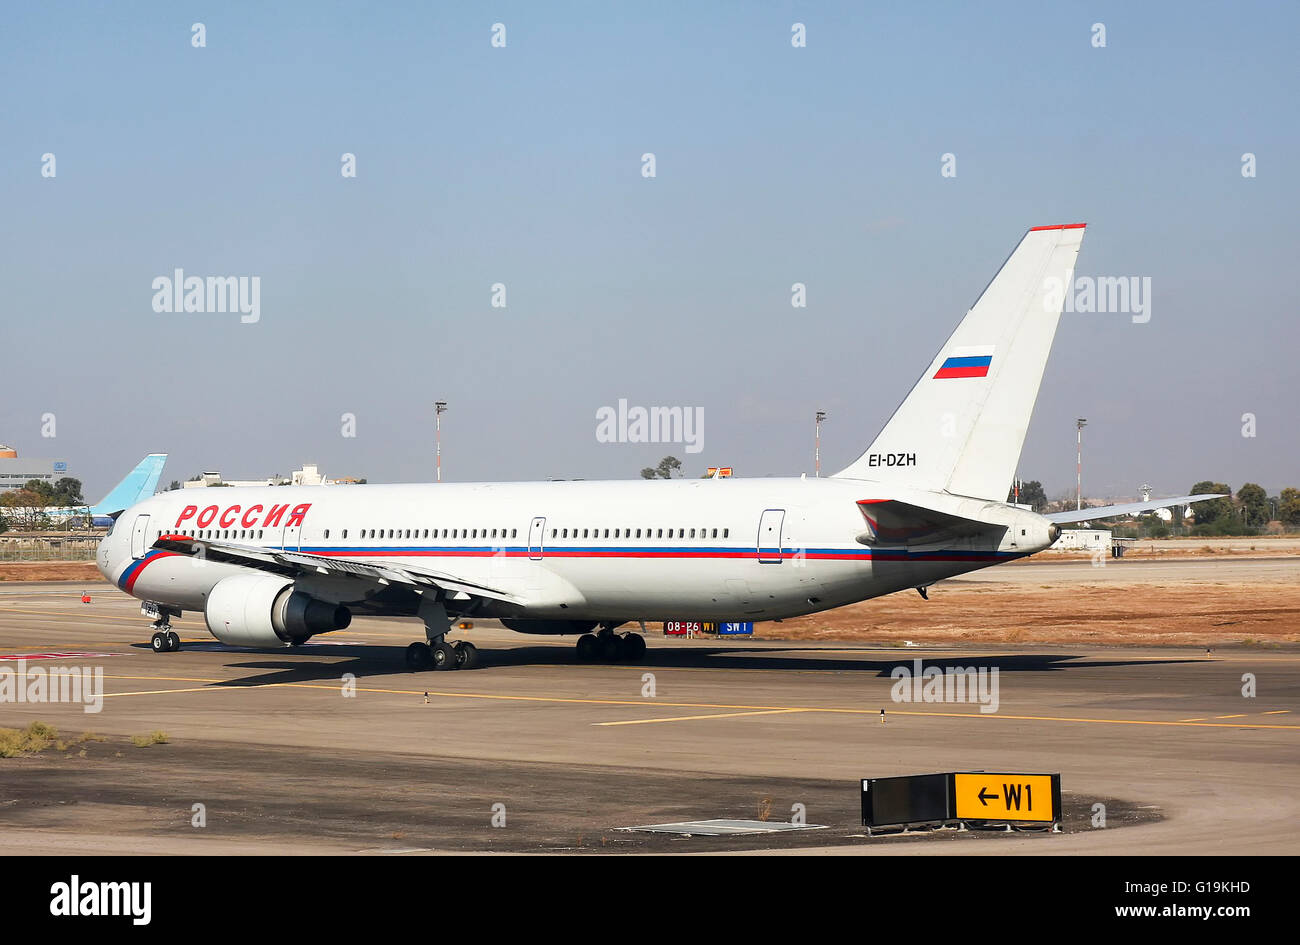 Israel, Ben-Gurion international Airport Rossiya passenger jet Boeing 767 3Q8(ER) ready for takeoff - Stock Image